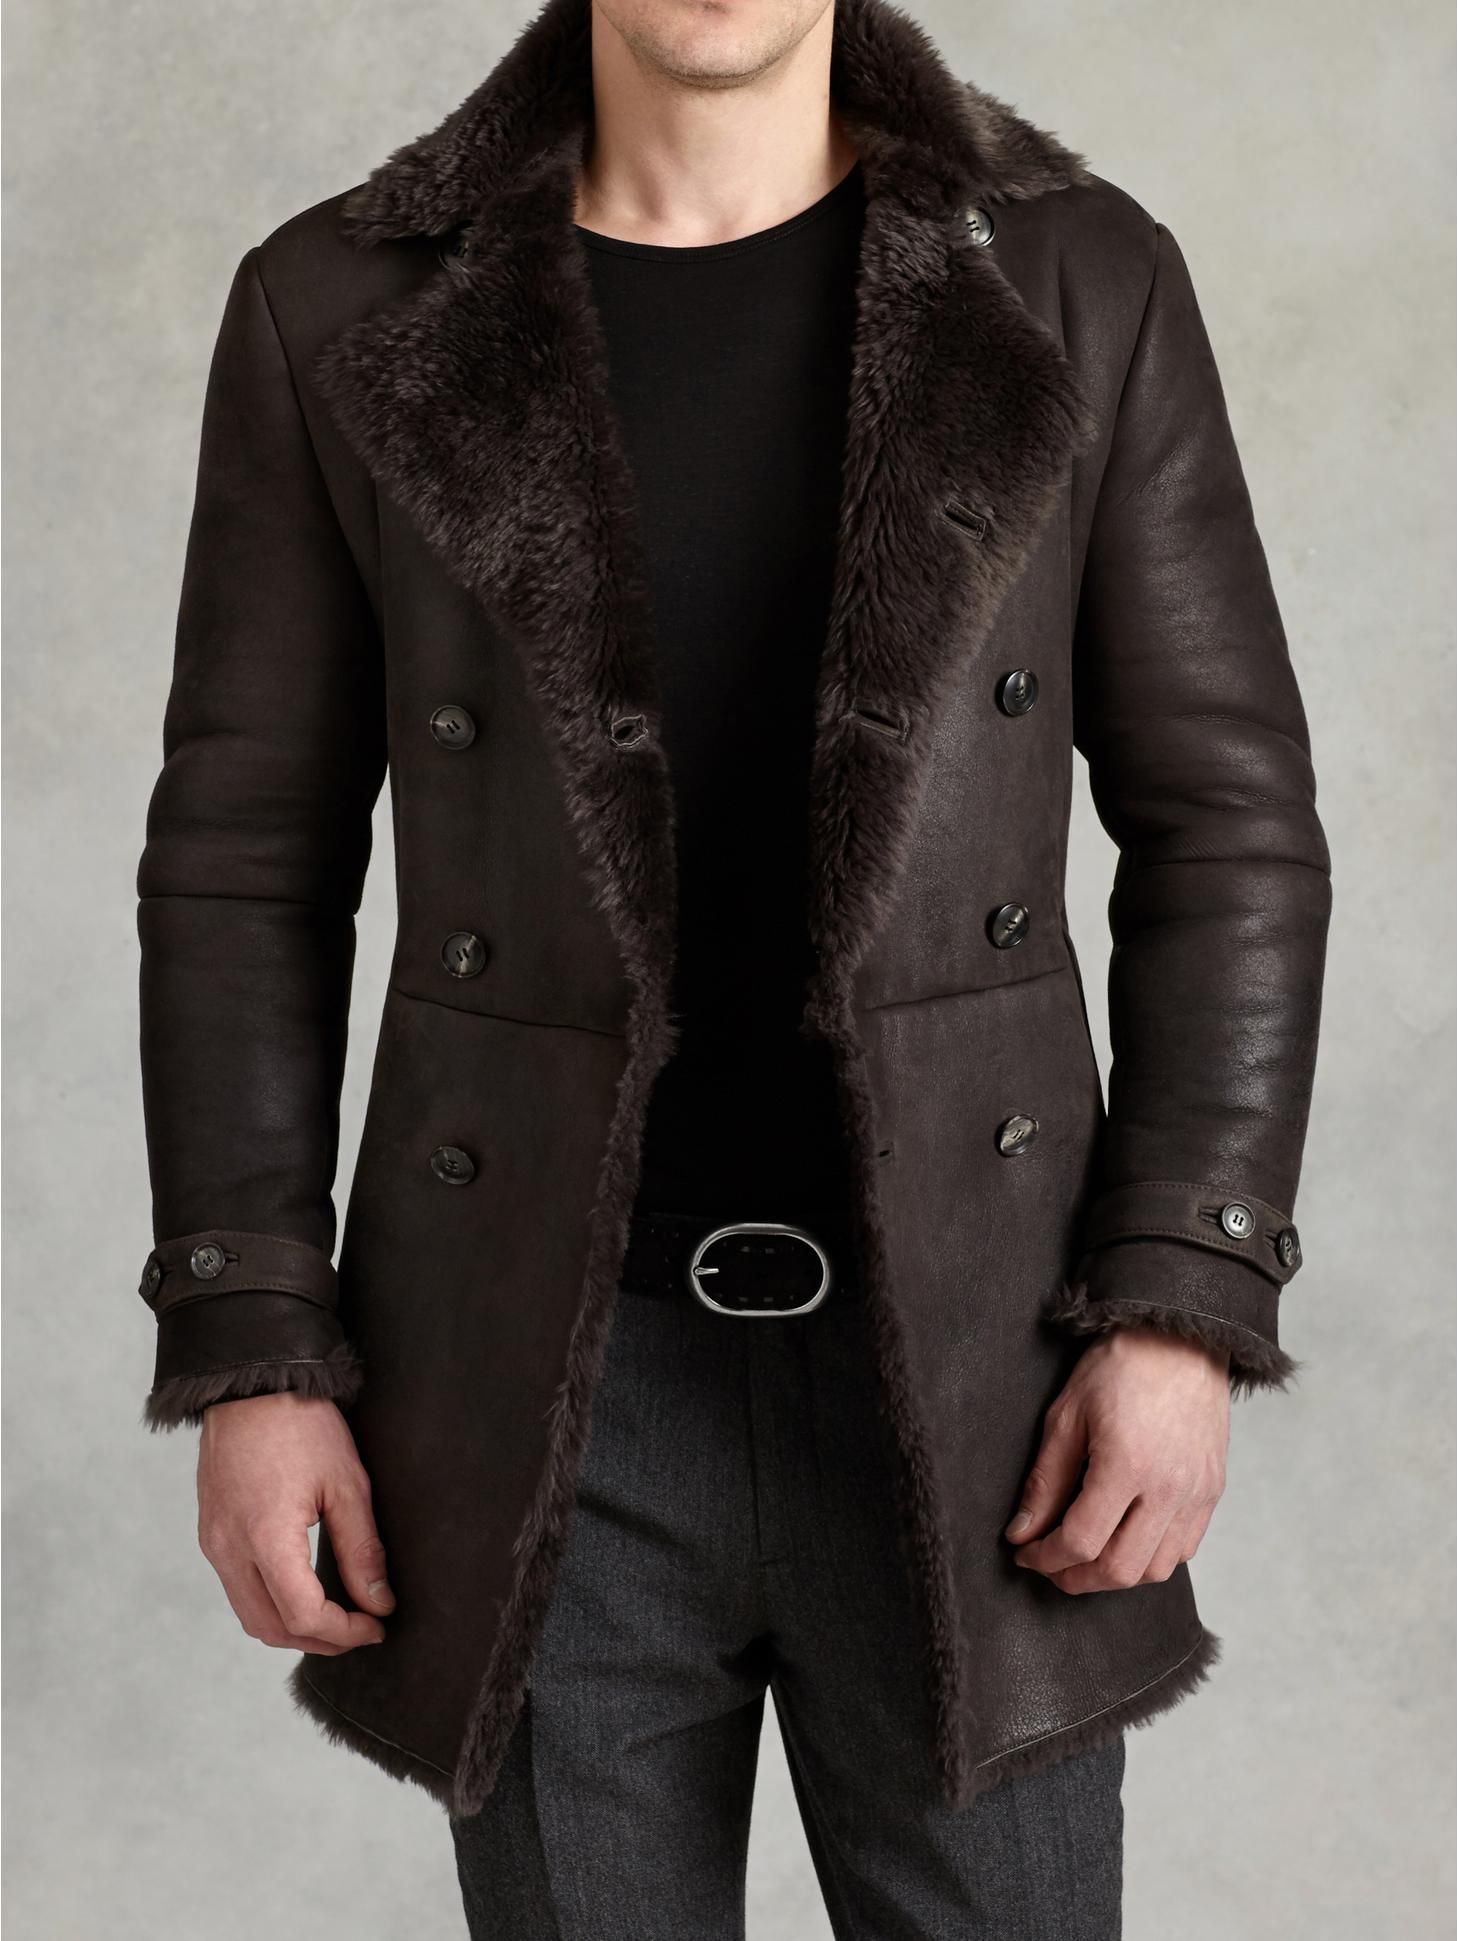 40d2e46618b Double Breasted Shearling Coat - John Varvatos More